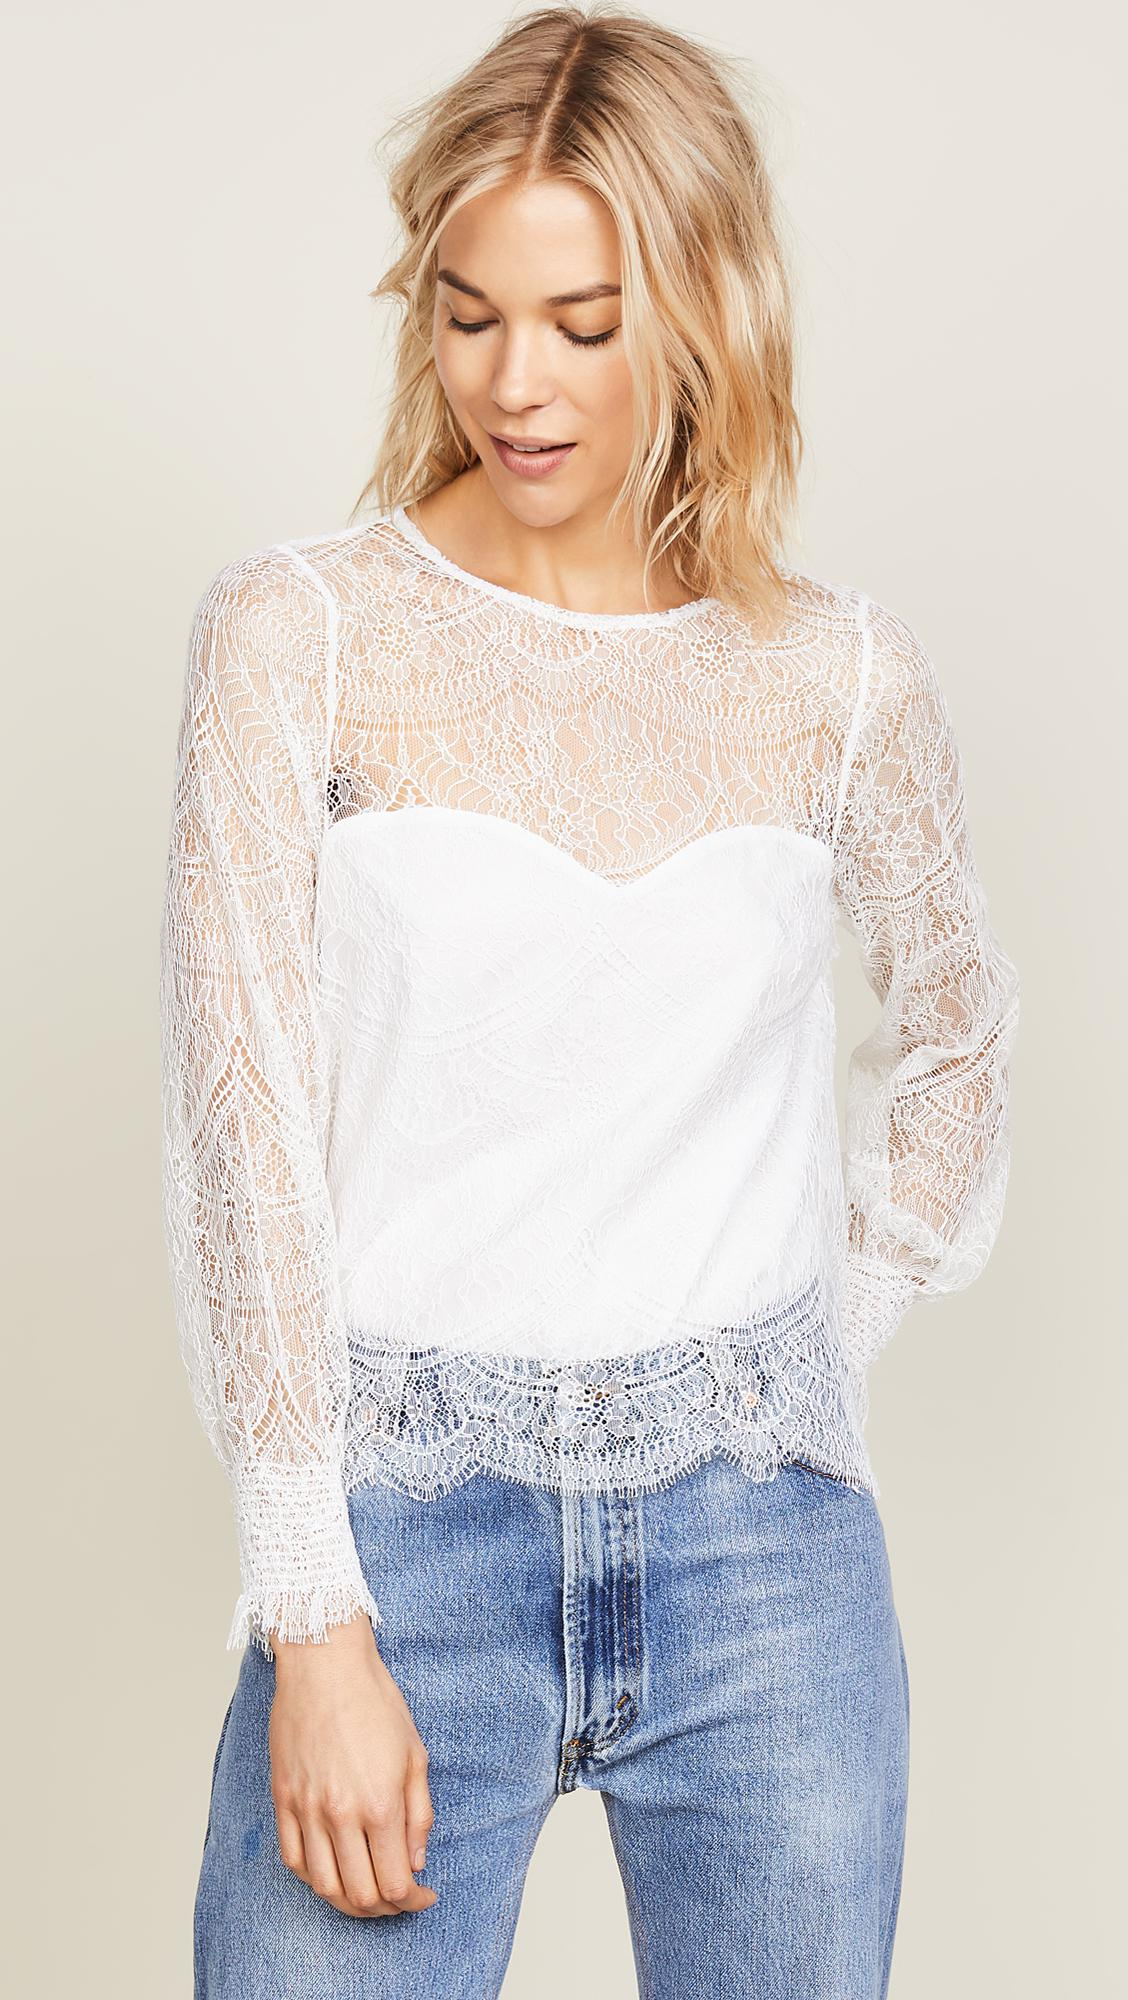 white lace jenevra top